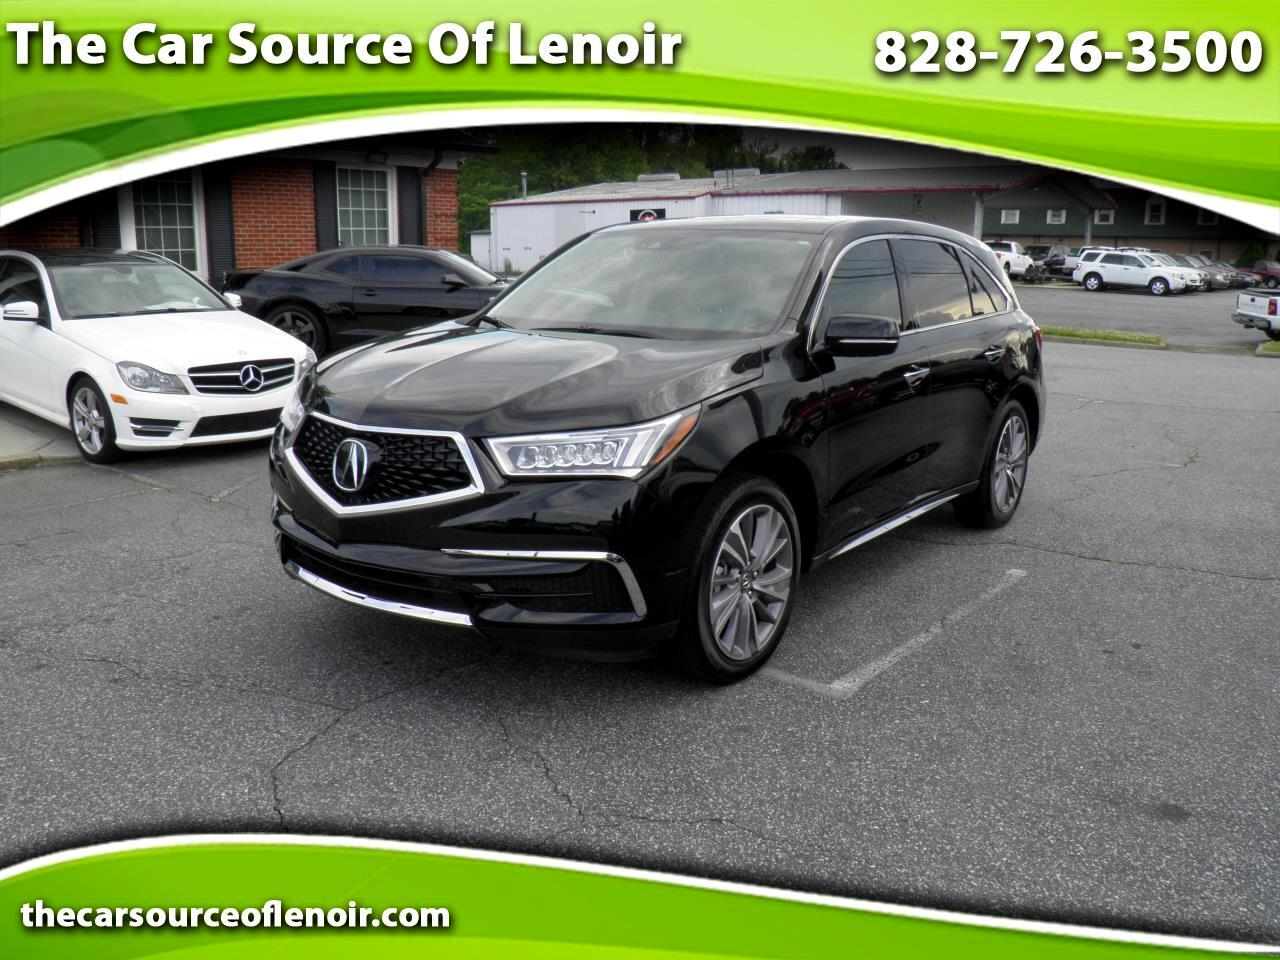 2017 Acura MDX SH-AWD 9-Spd AT w/Tech Package